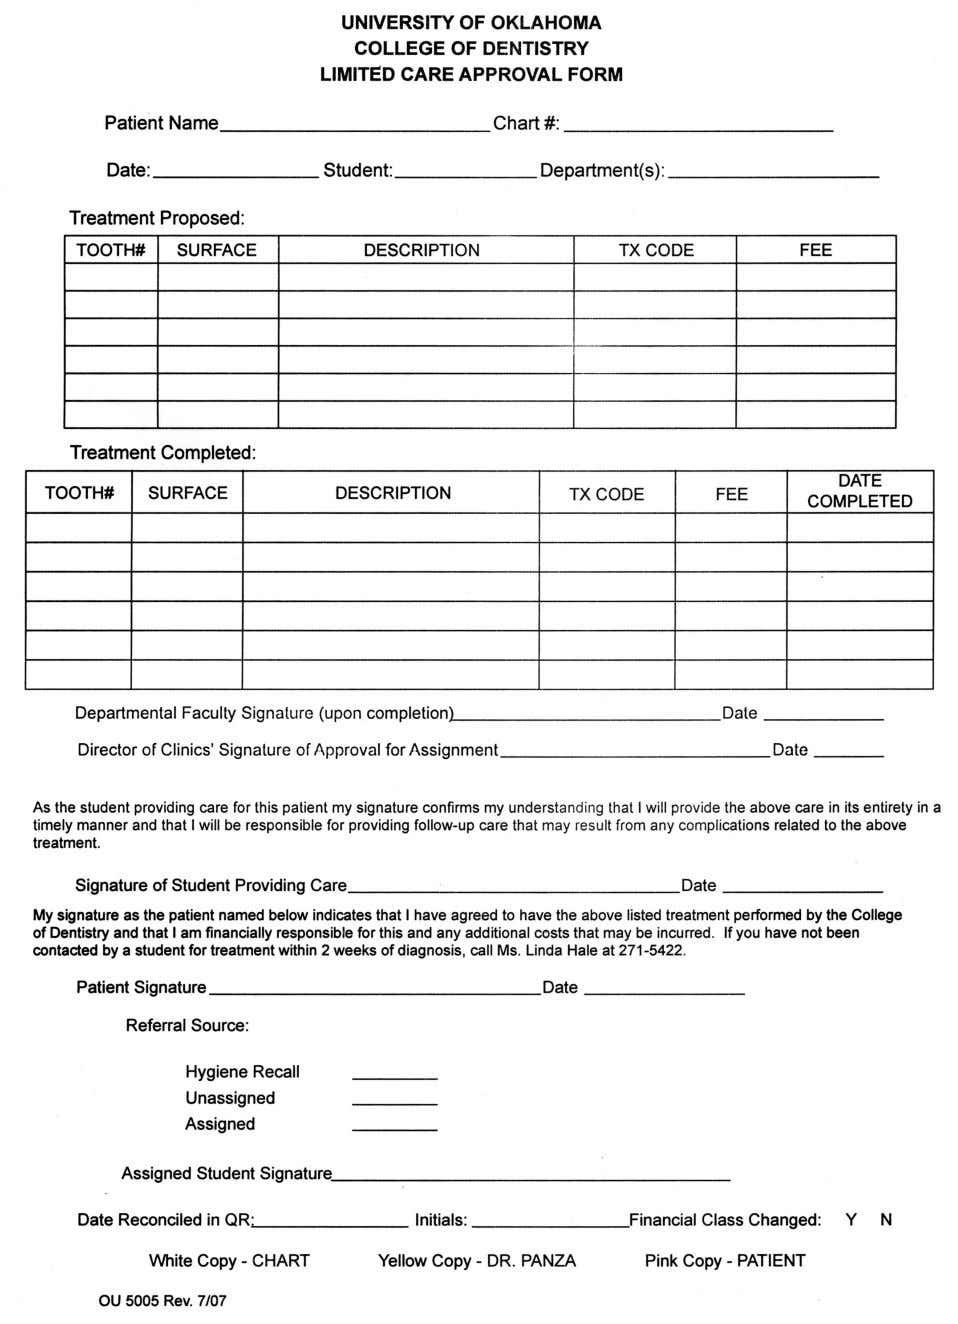 Fig. 4b Limited Care Approval Form, from COD Clinic Operations 44